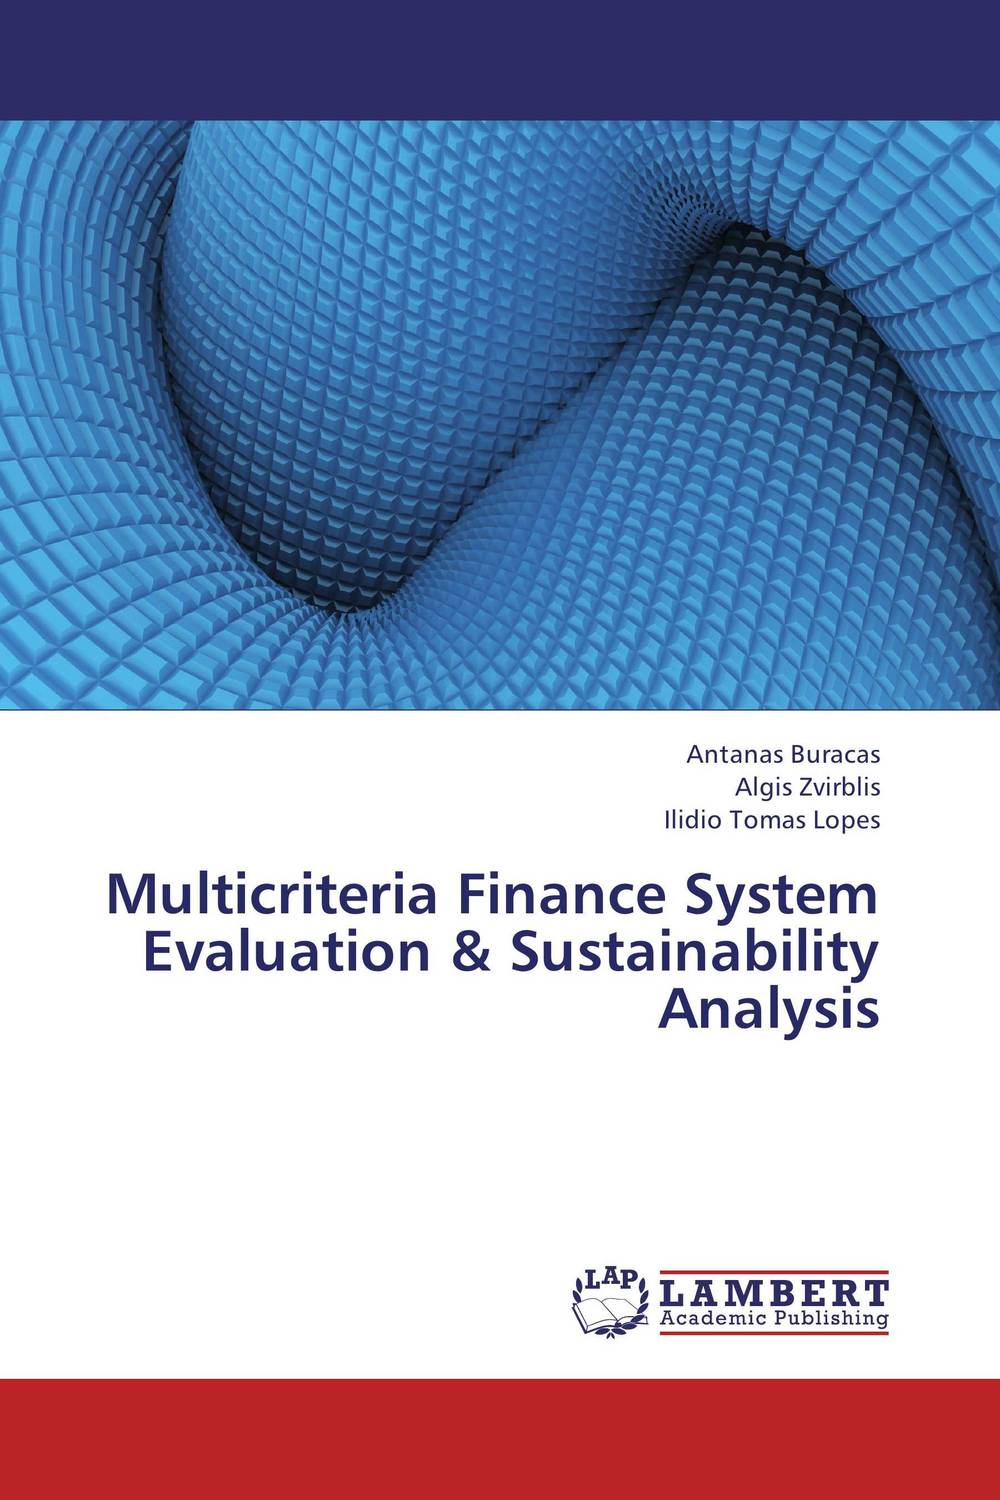 Multicriteria Finance System  Evaluation & Sustainability Analysis cj stanley late ching finance – hu kuang–yung as an innovator